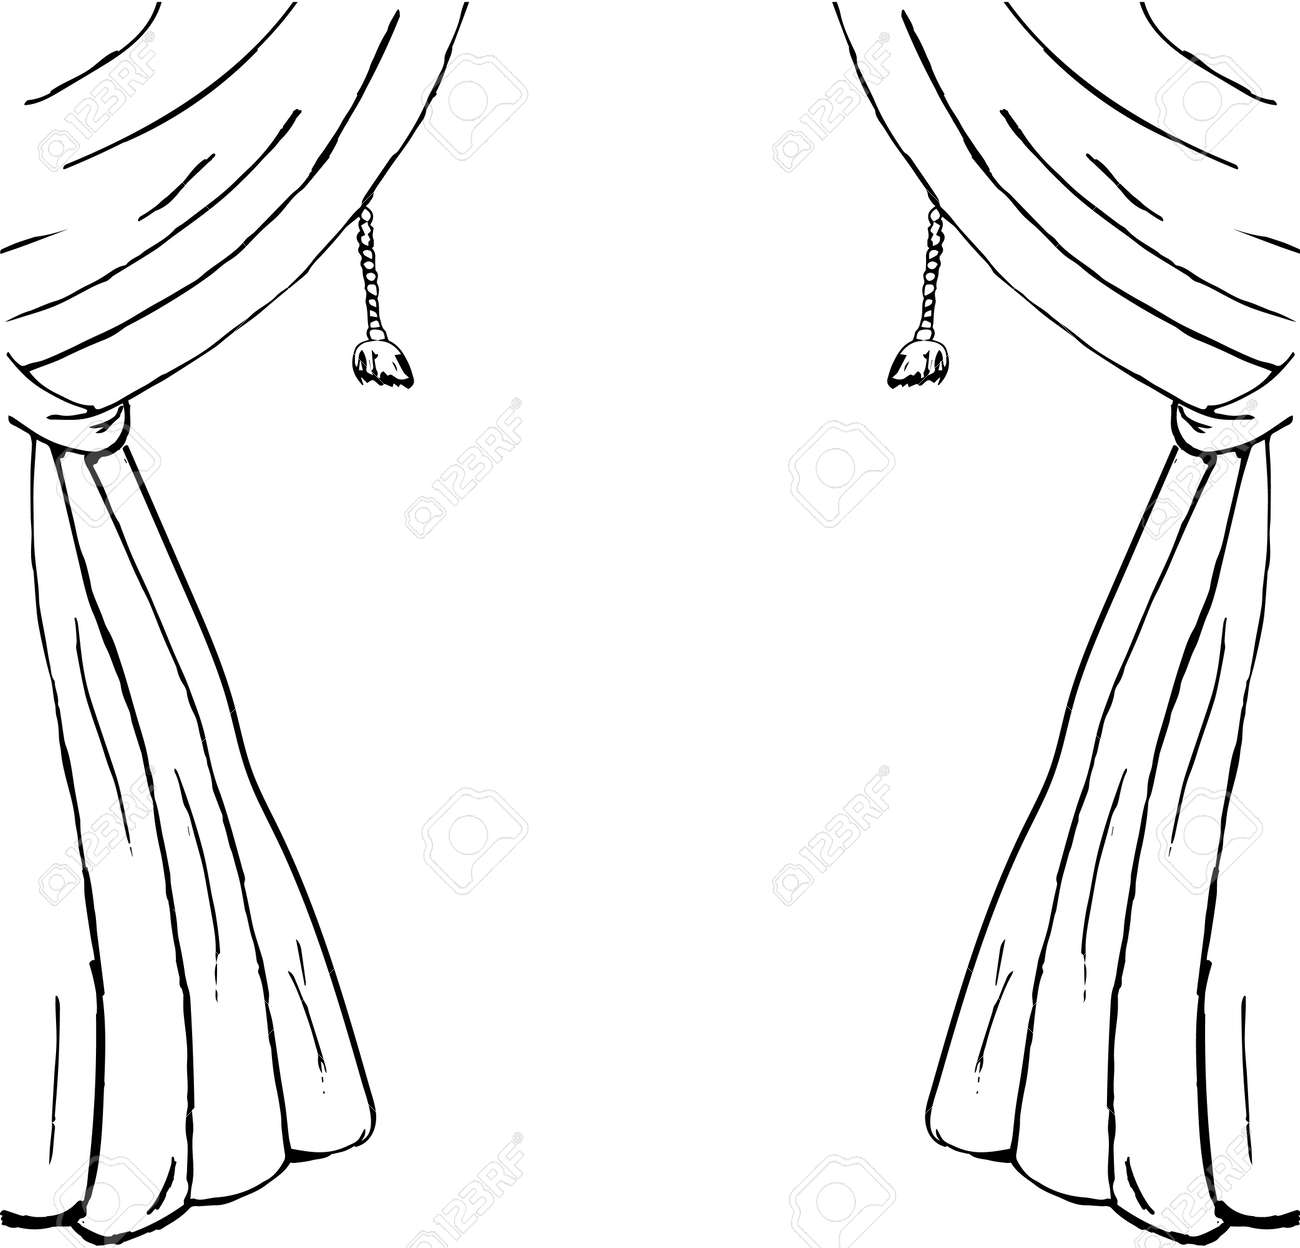 Drawn Sketch Of Curtains As A Design Element. Vector Stock Vector   47305499